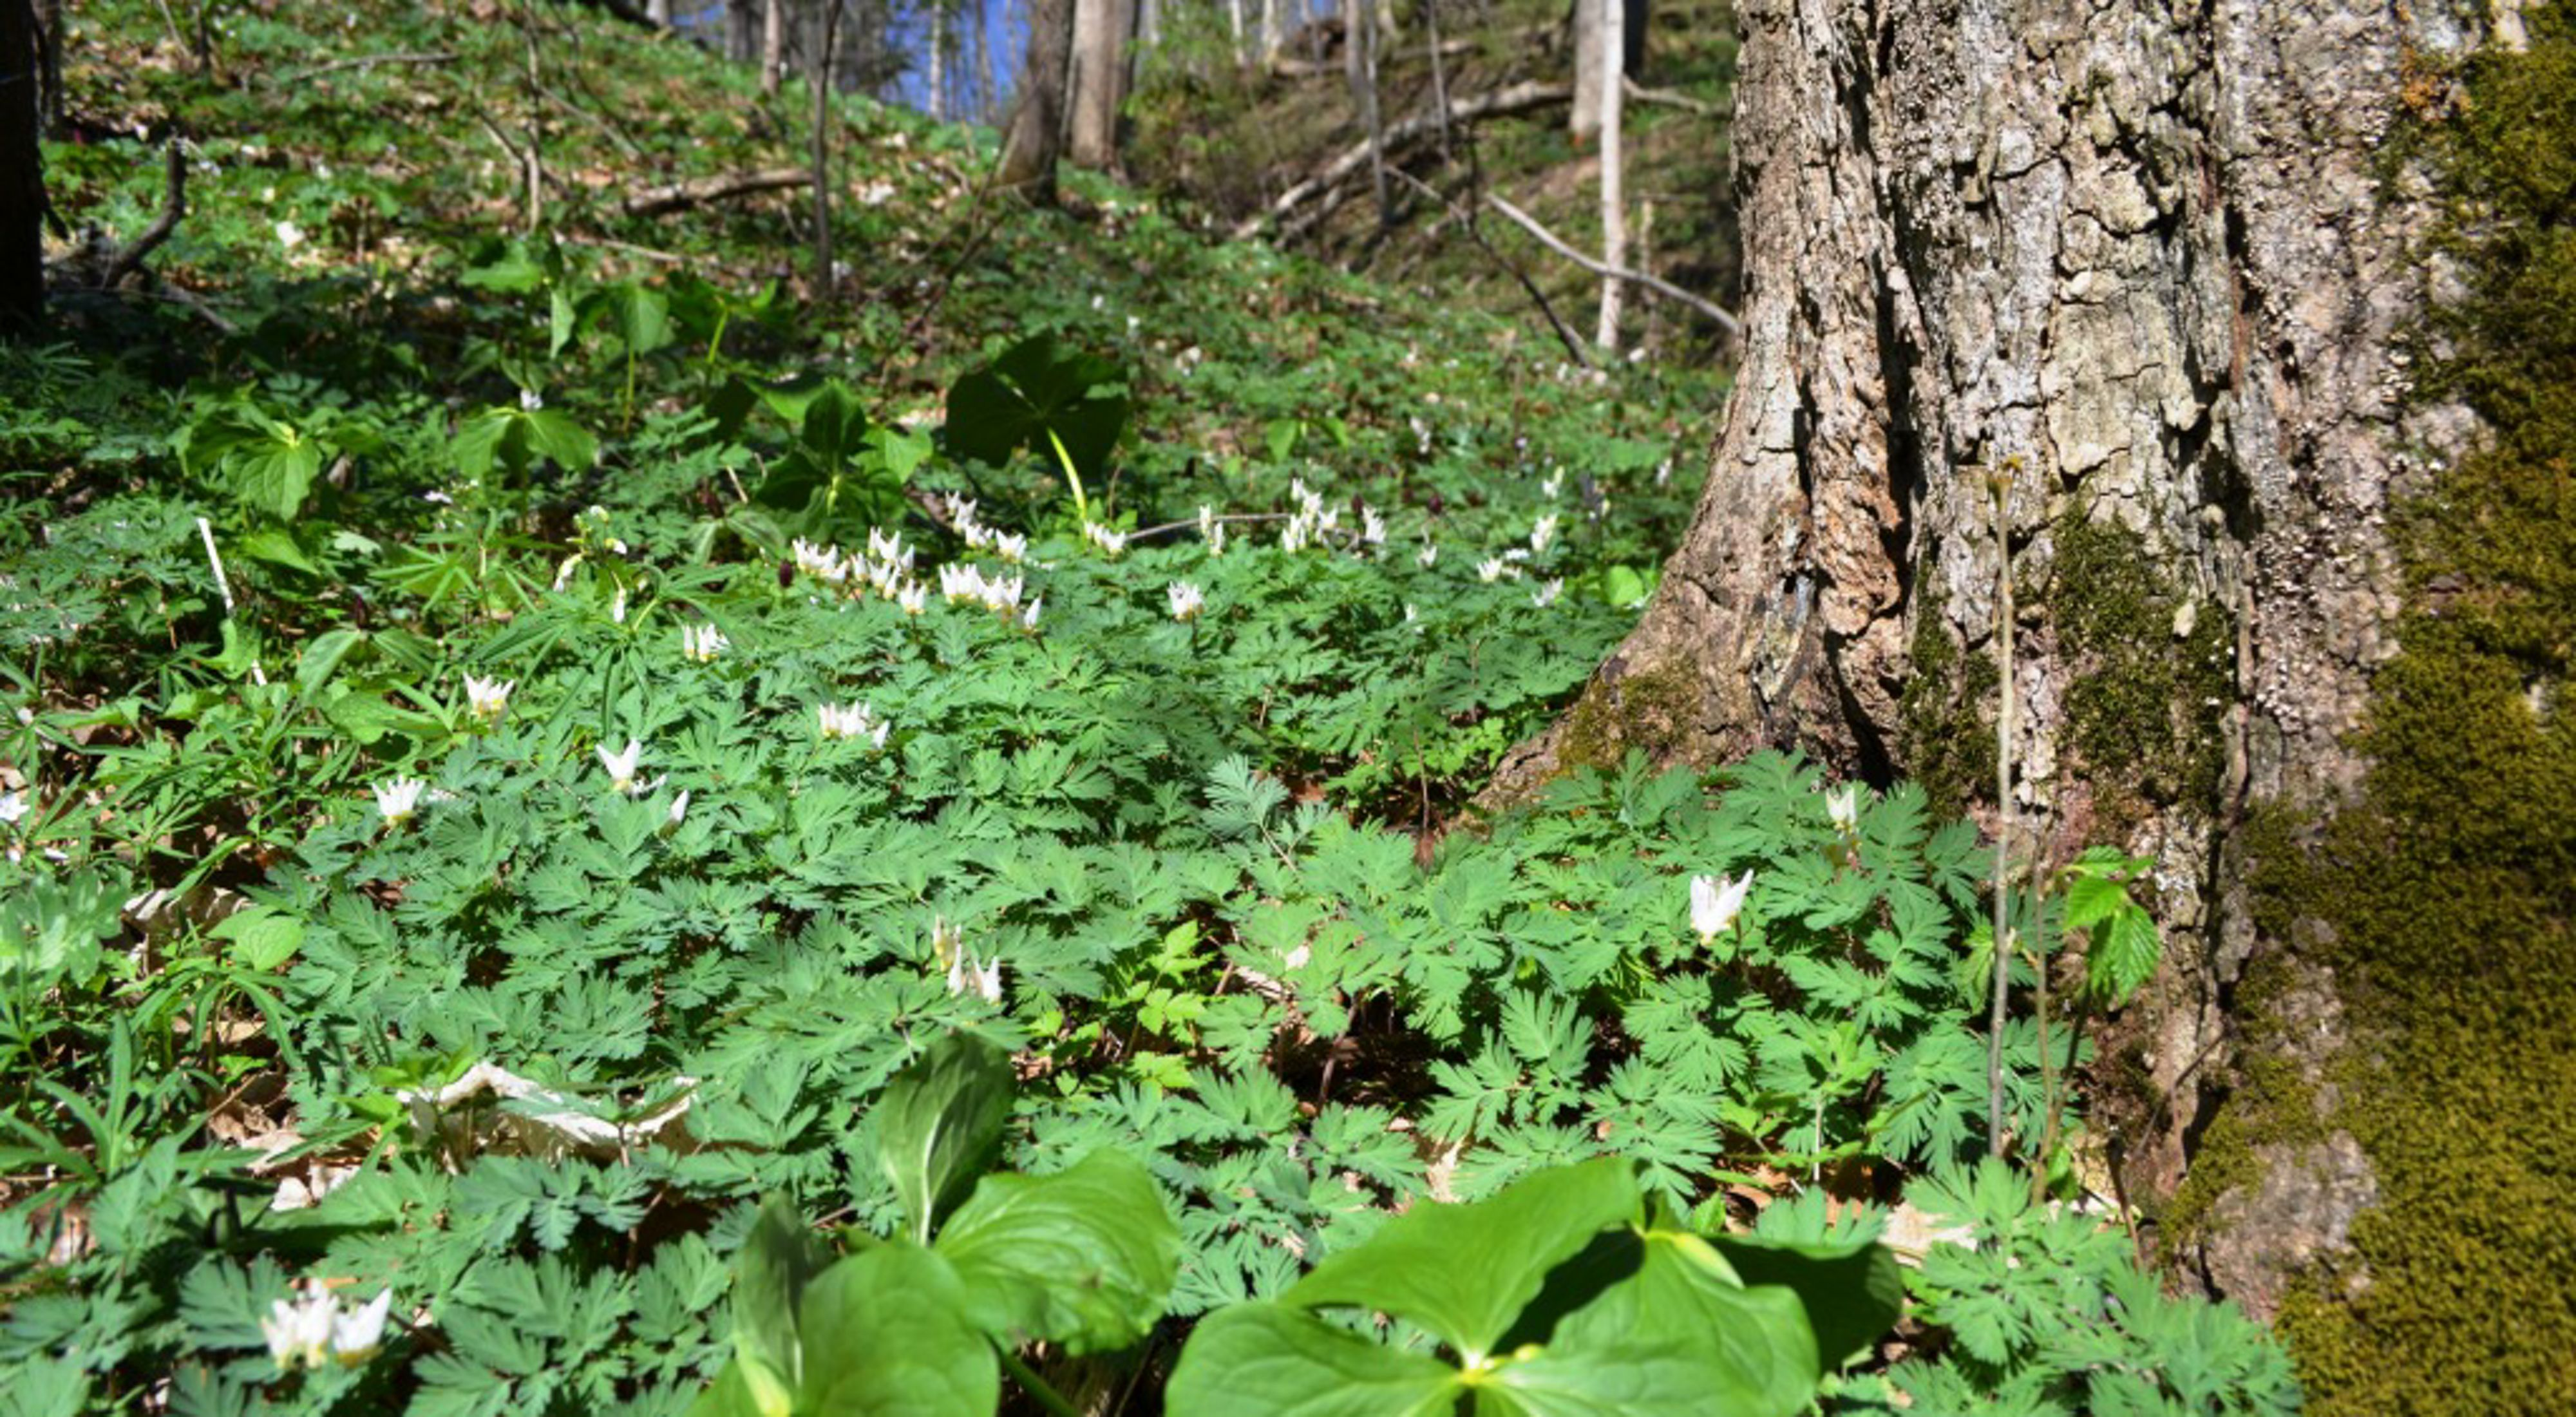 Wildflowers growing at the base of a large tree in a forested area.